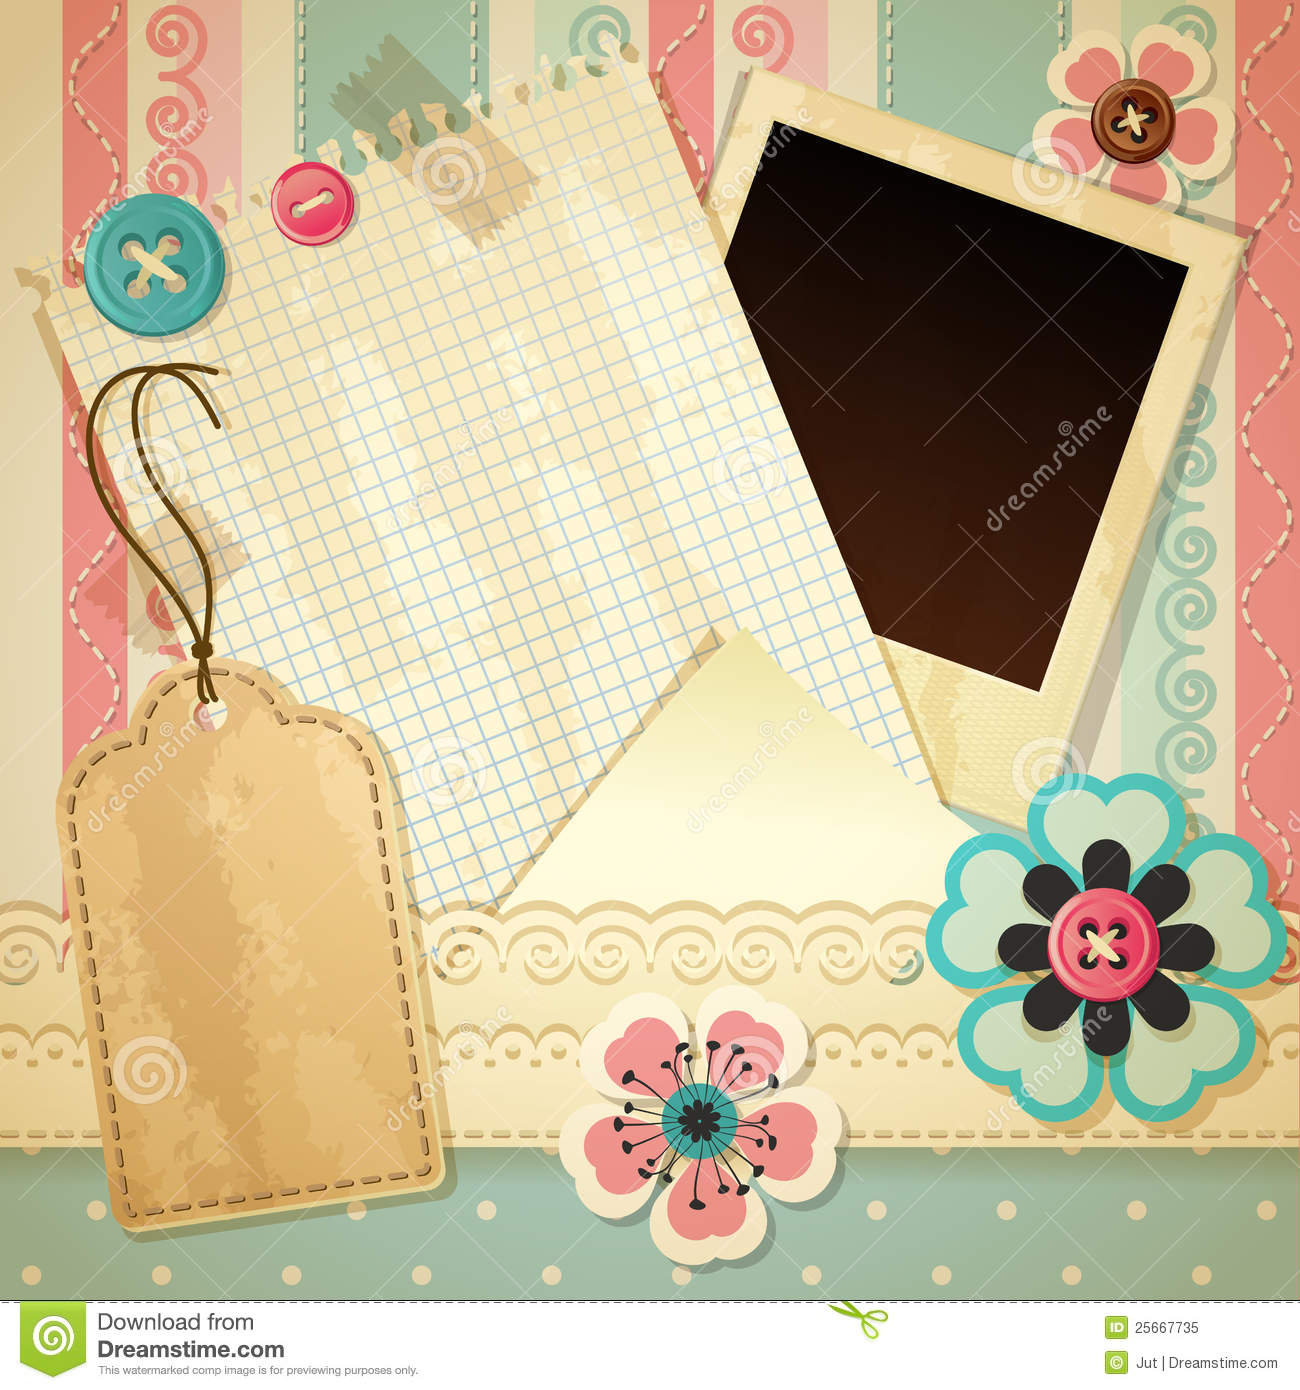 Scrapbook Template Royalty Free Stock Photo - Image: 25667745